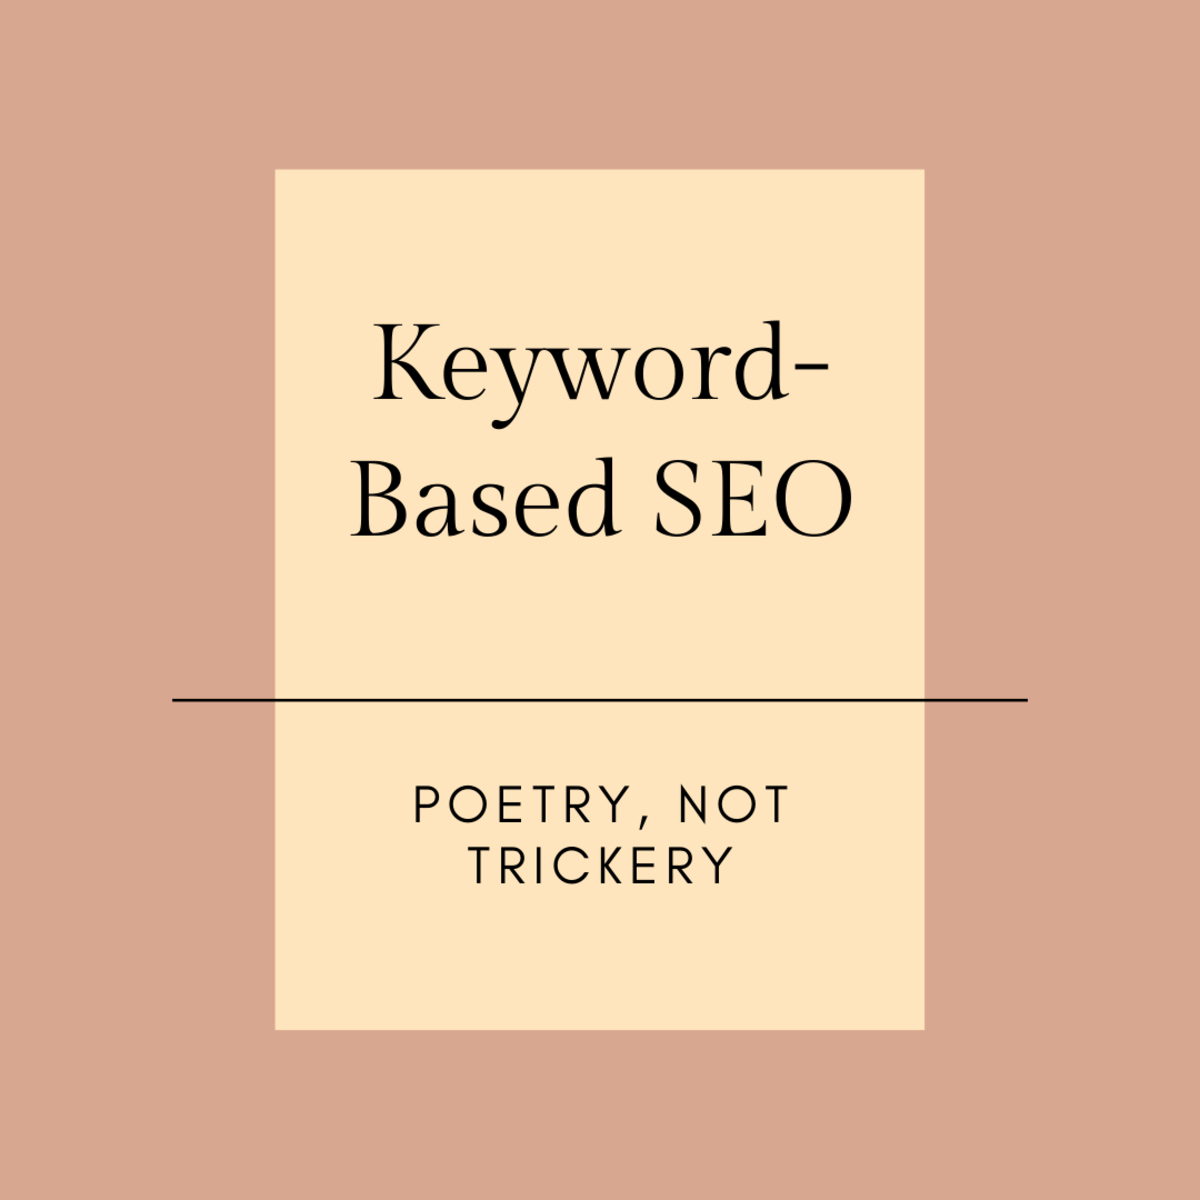 SEO and poetry have more in common than you'd think.